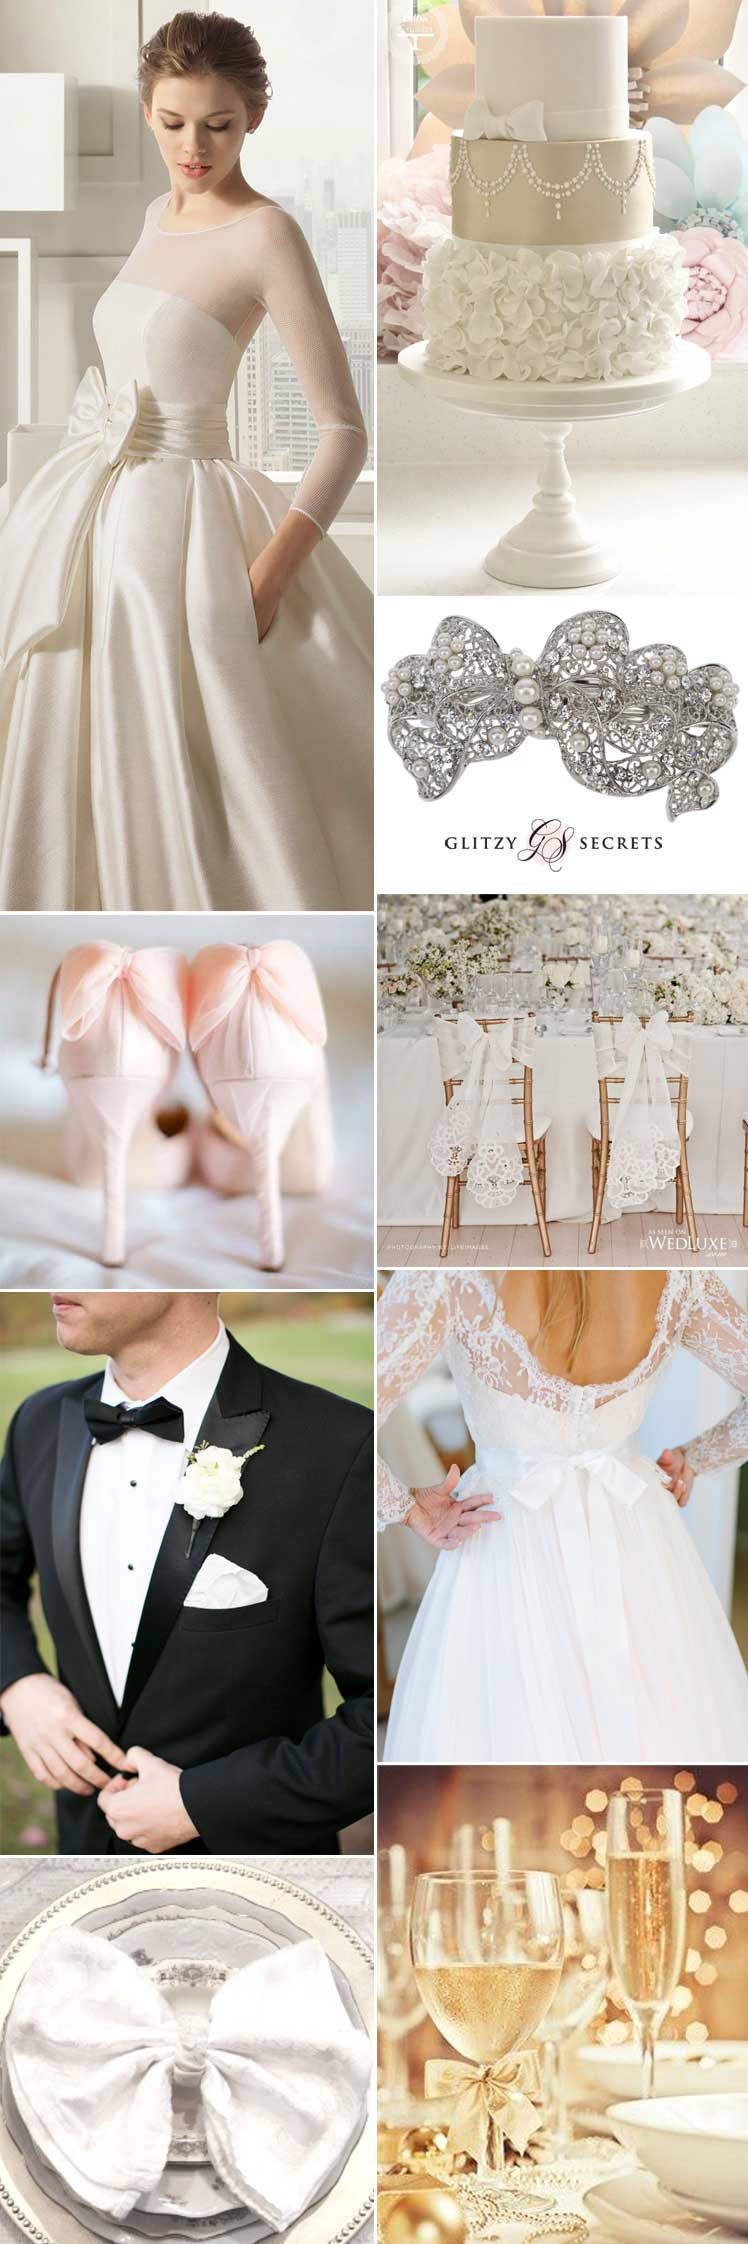 beautiful ideas for a bow wedding theme